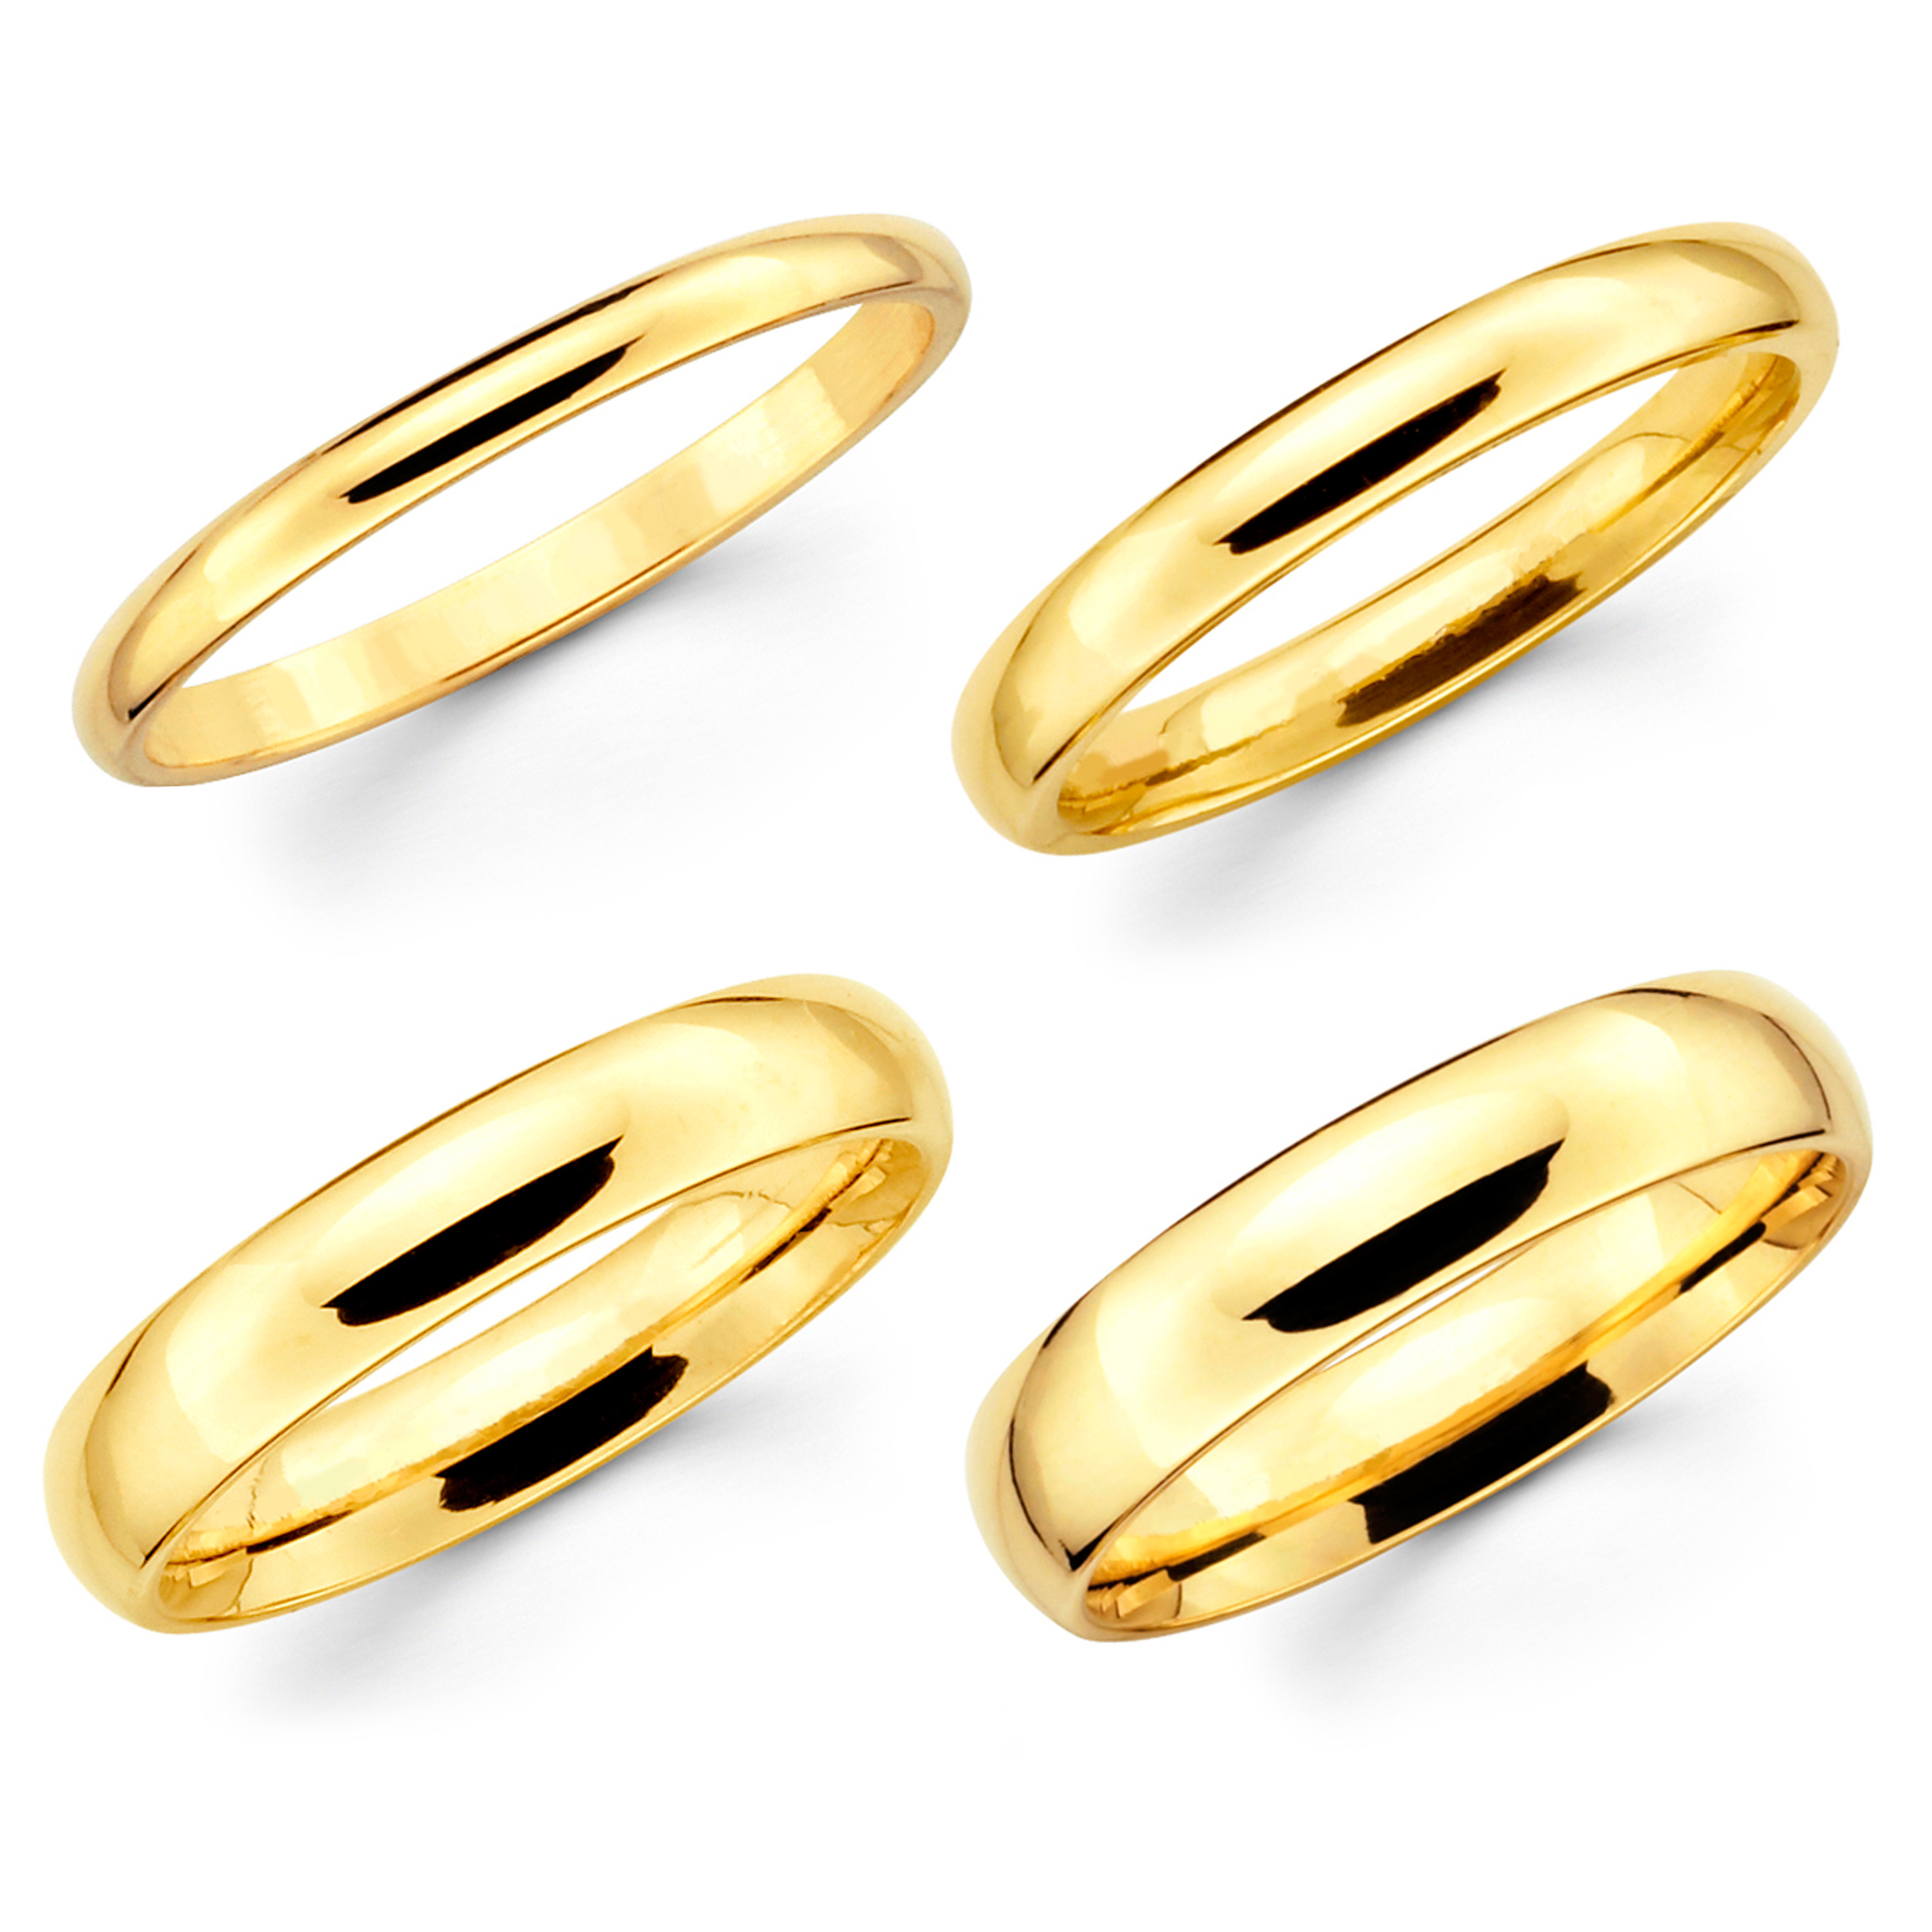 gold i court all page ring stunning plain mens category types org rings uk grooms wedding